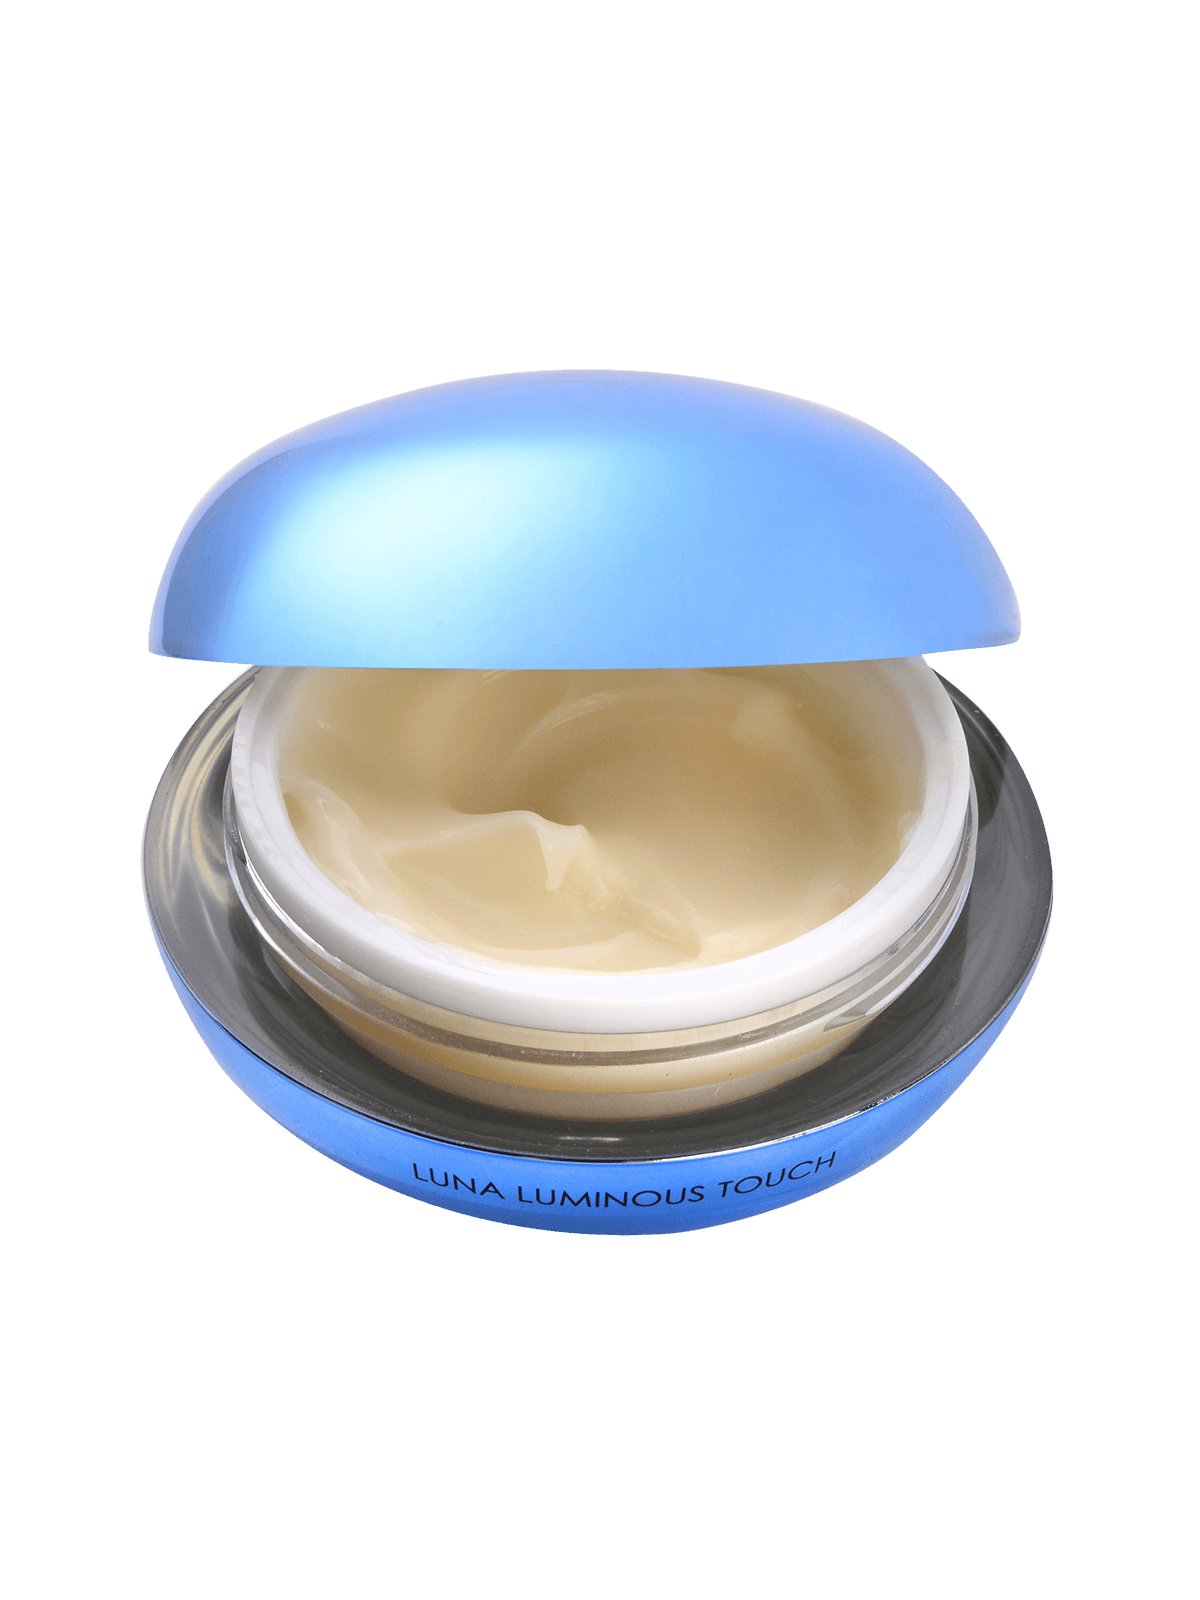 Luna Luminous Touch open lid